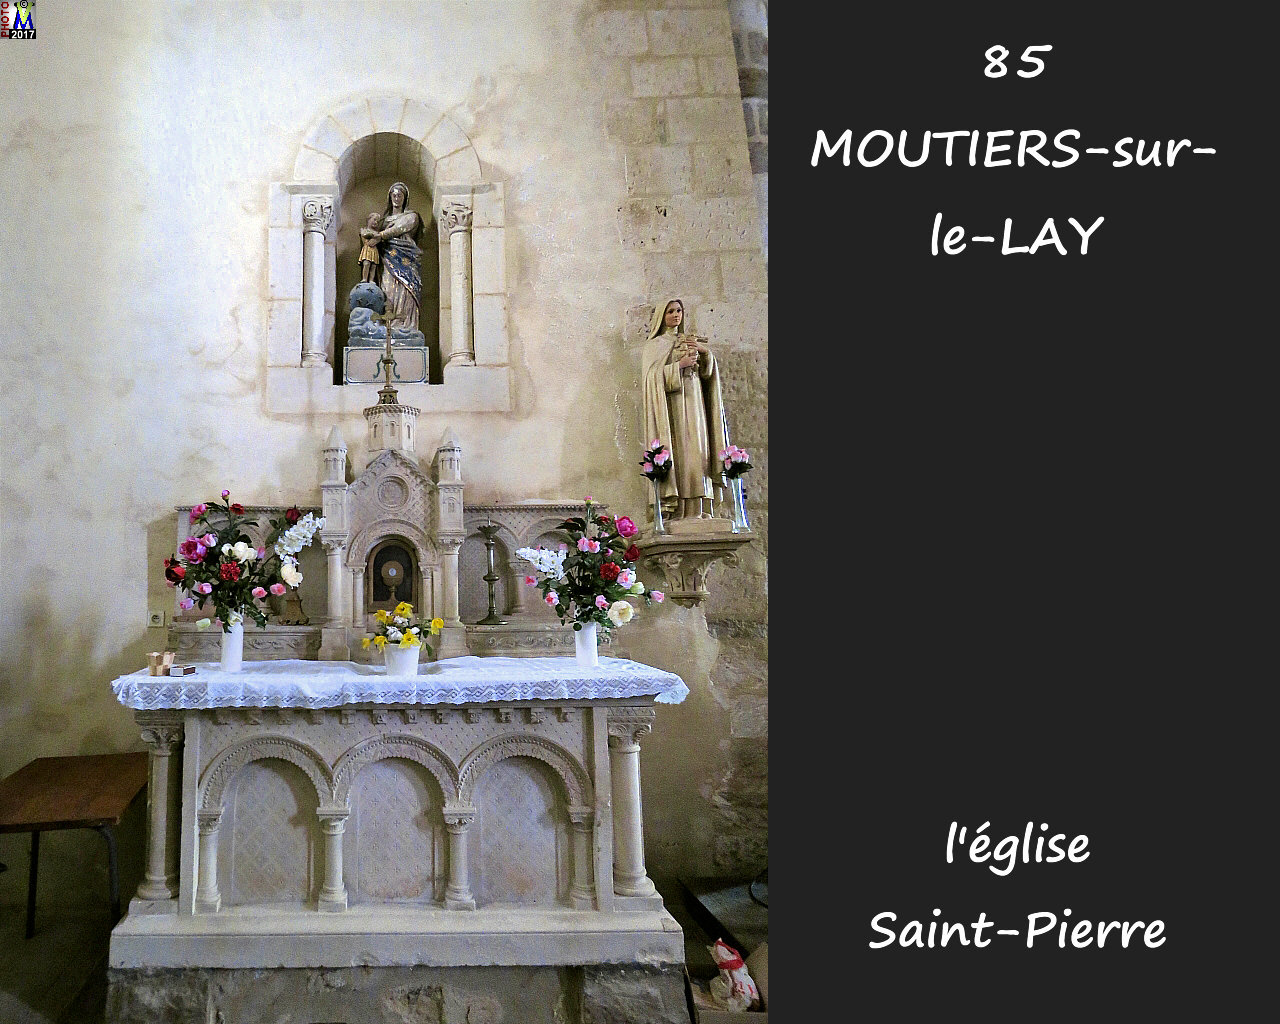 85MOUTIERS-LAY_eglise_1274.jpg